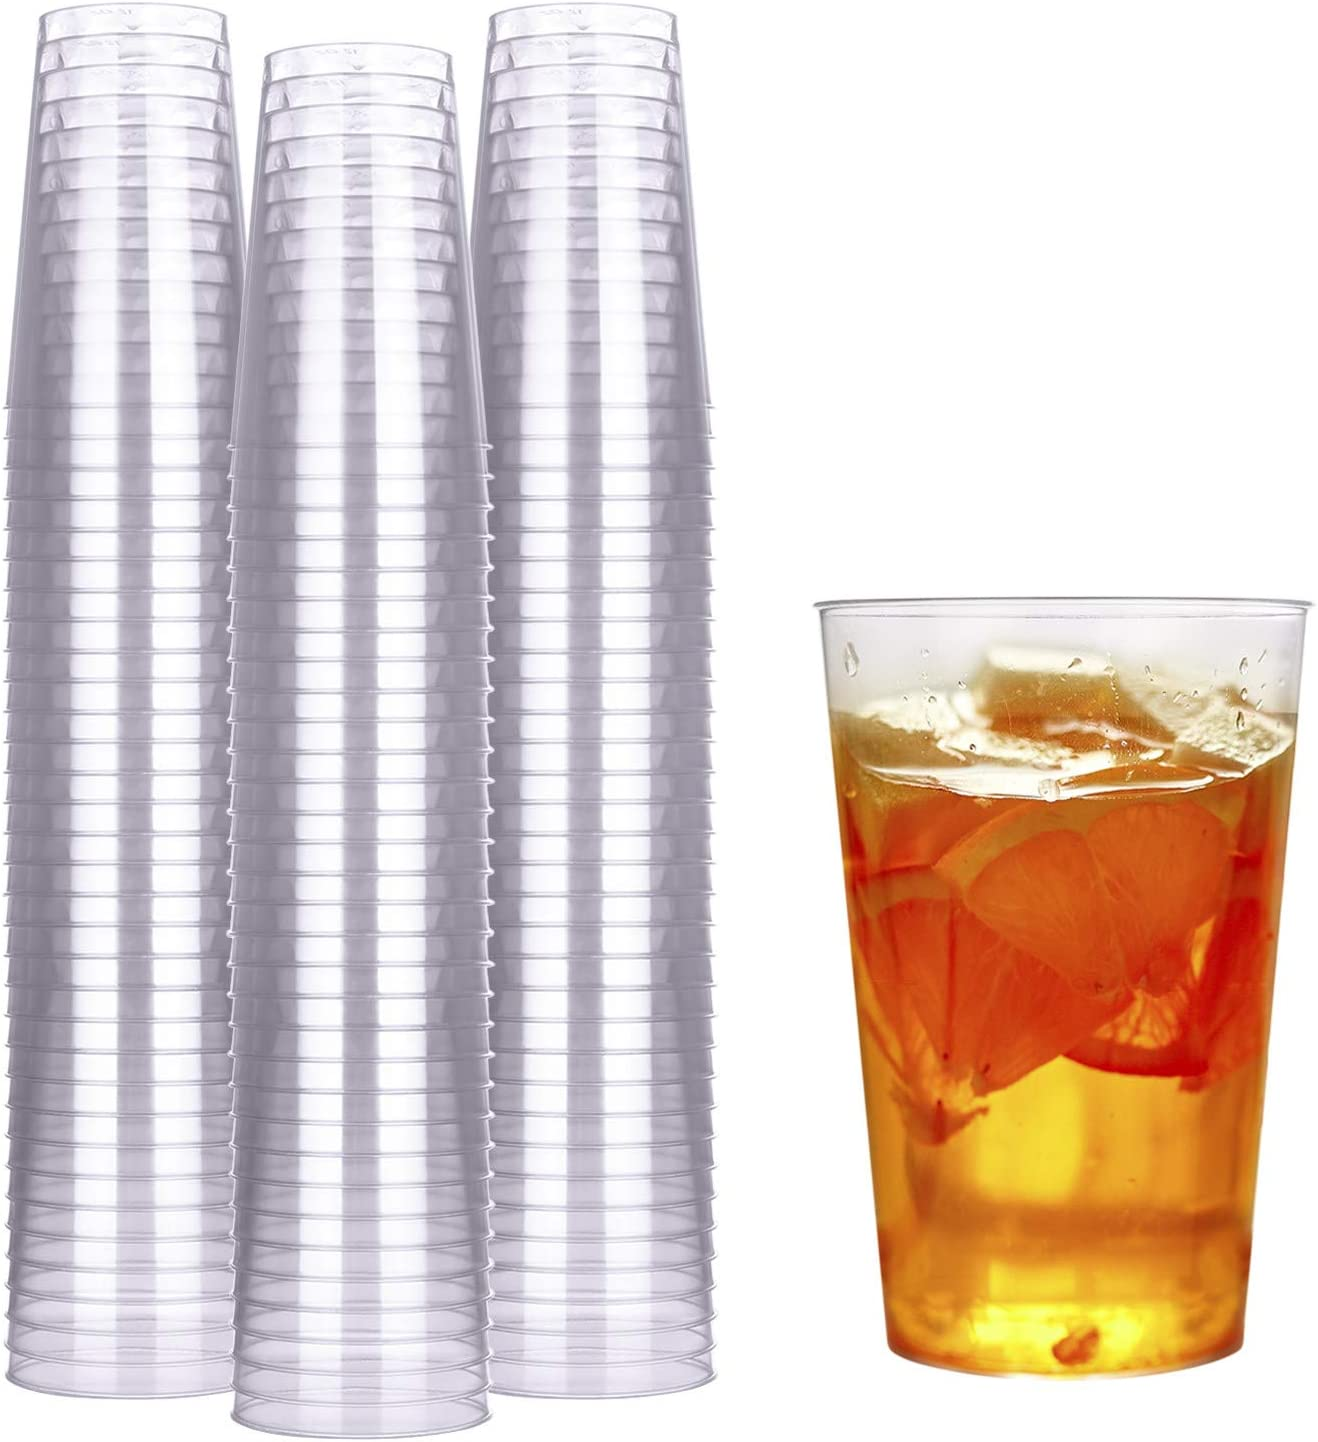 HyHousing 10 Oz Plastic Cups, 100 PACK Clear Plastic Cups Tumblers Disposable Cups Perfect for Daily Life at Home, Party, Wedding, Wine Tasting (T10-100)